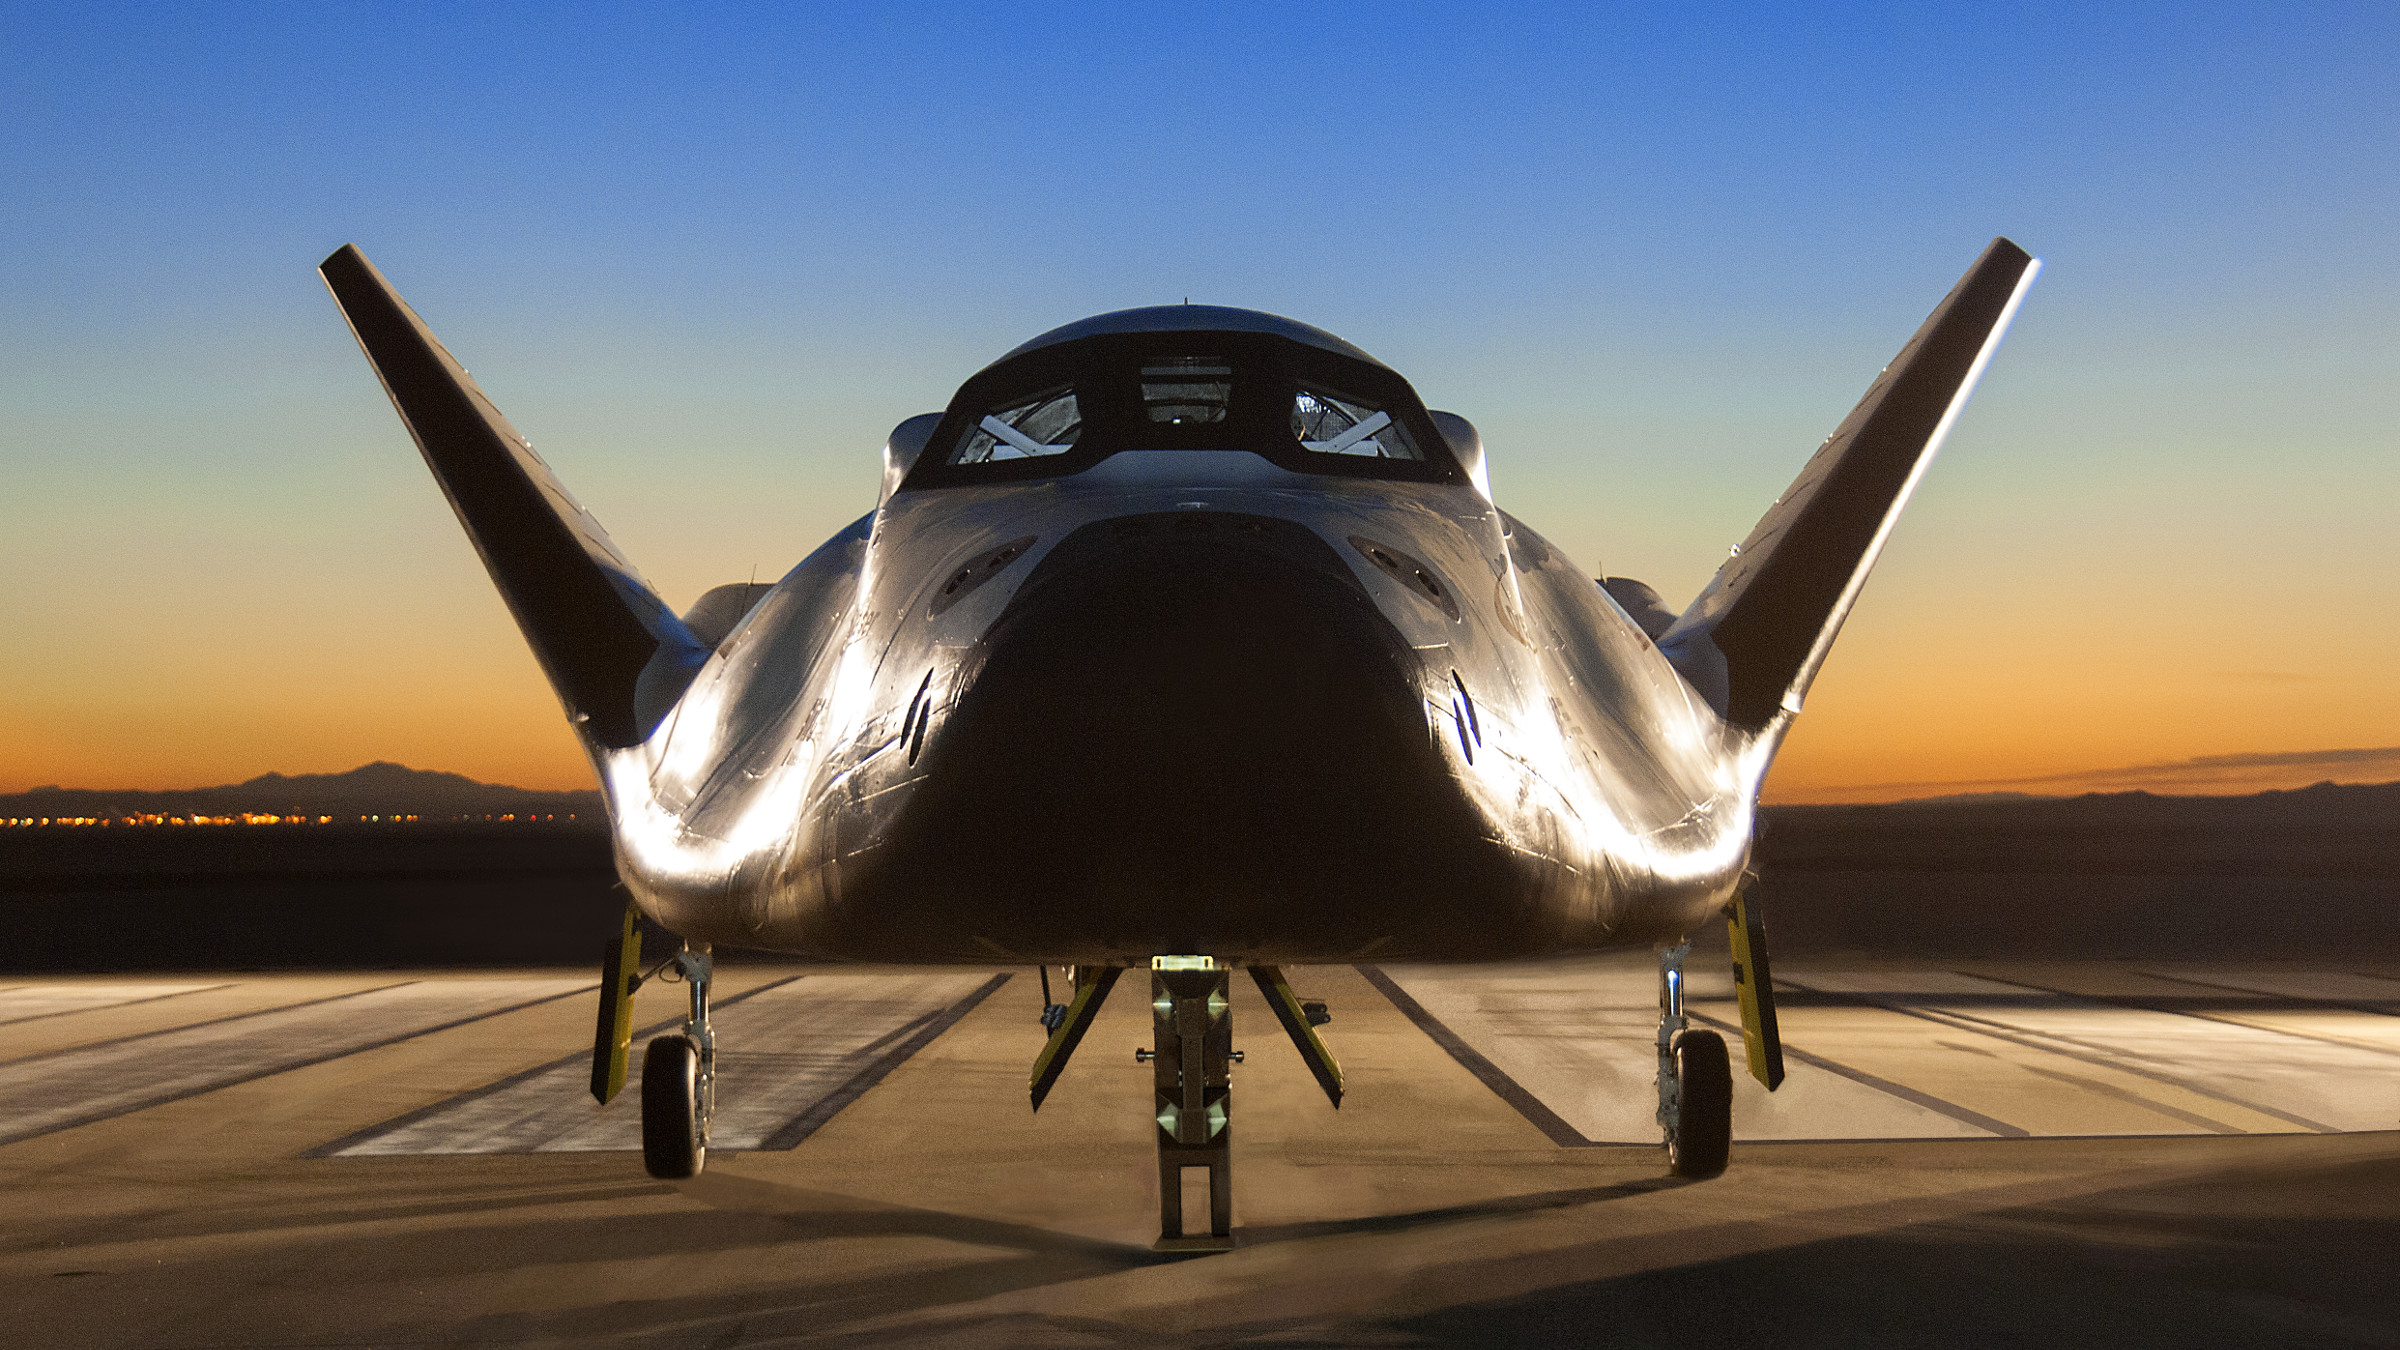 The Sierra Nevada Corporation's Dream Chaser spacecraft on the runway in 2014.